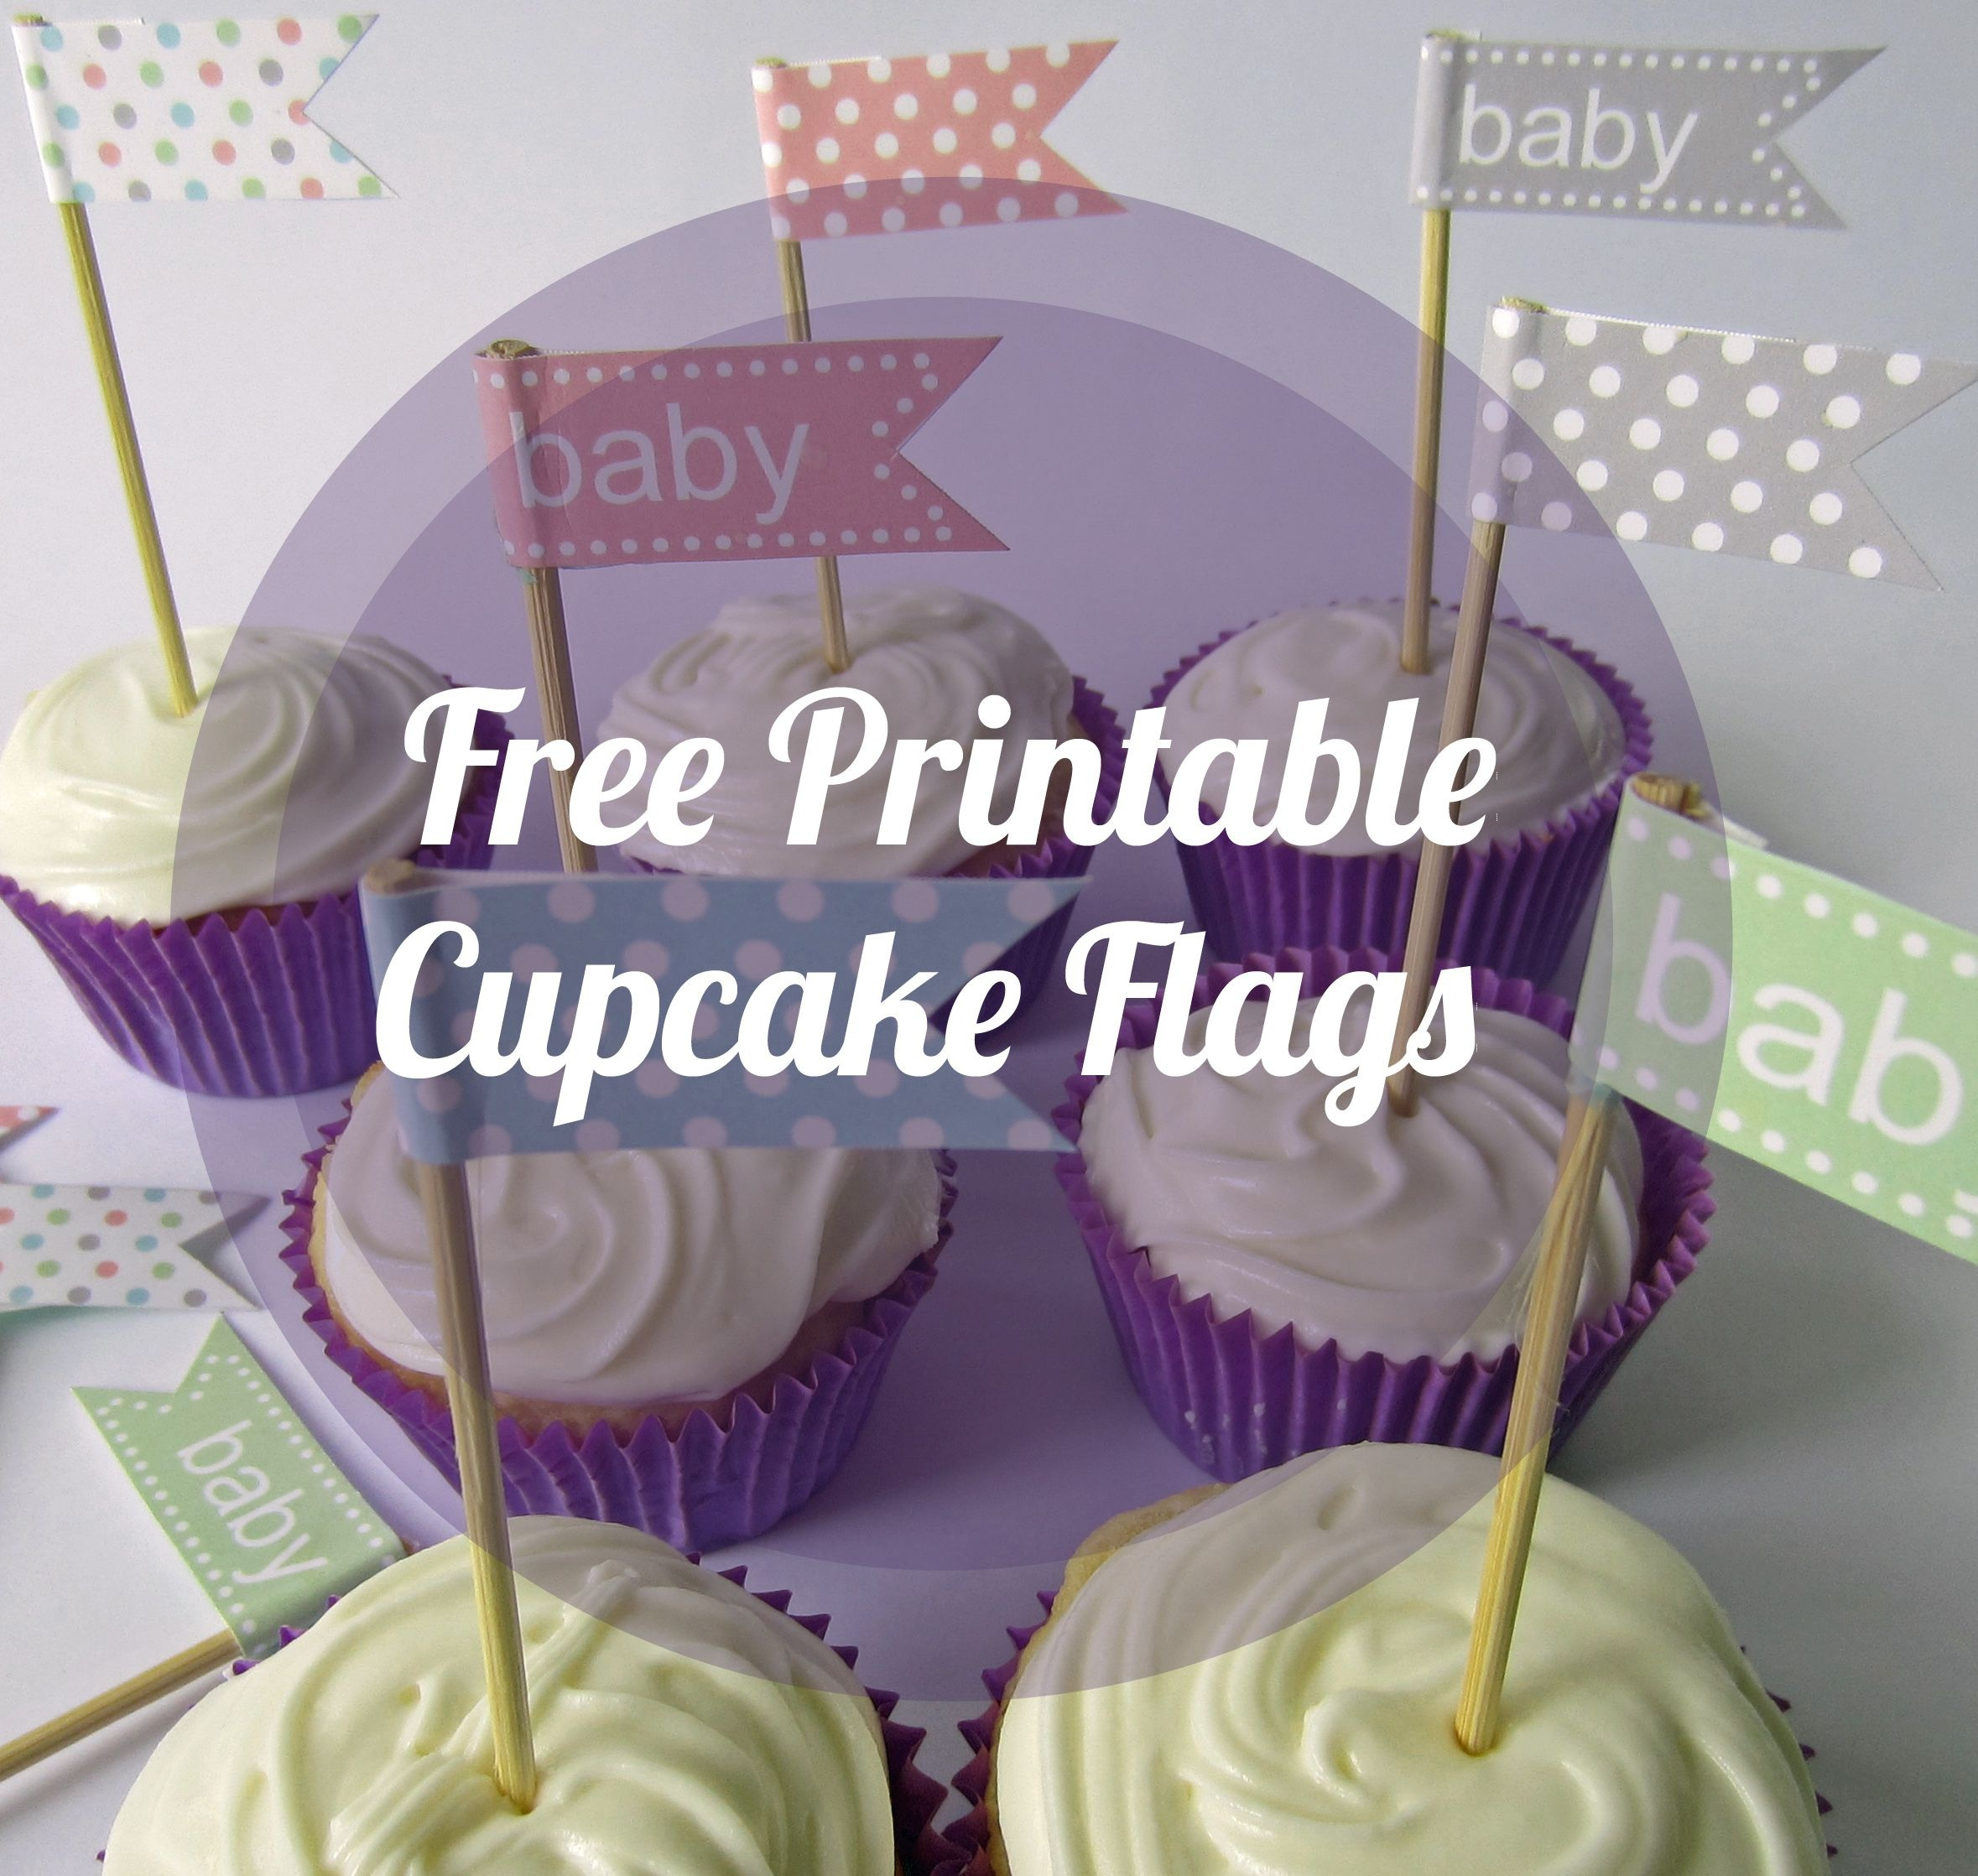 Printable Cupcake Flags | Free Printable Cupcake Flags | Baby - Cupcake Flags Printable Free